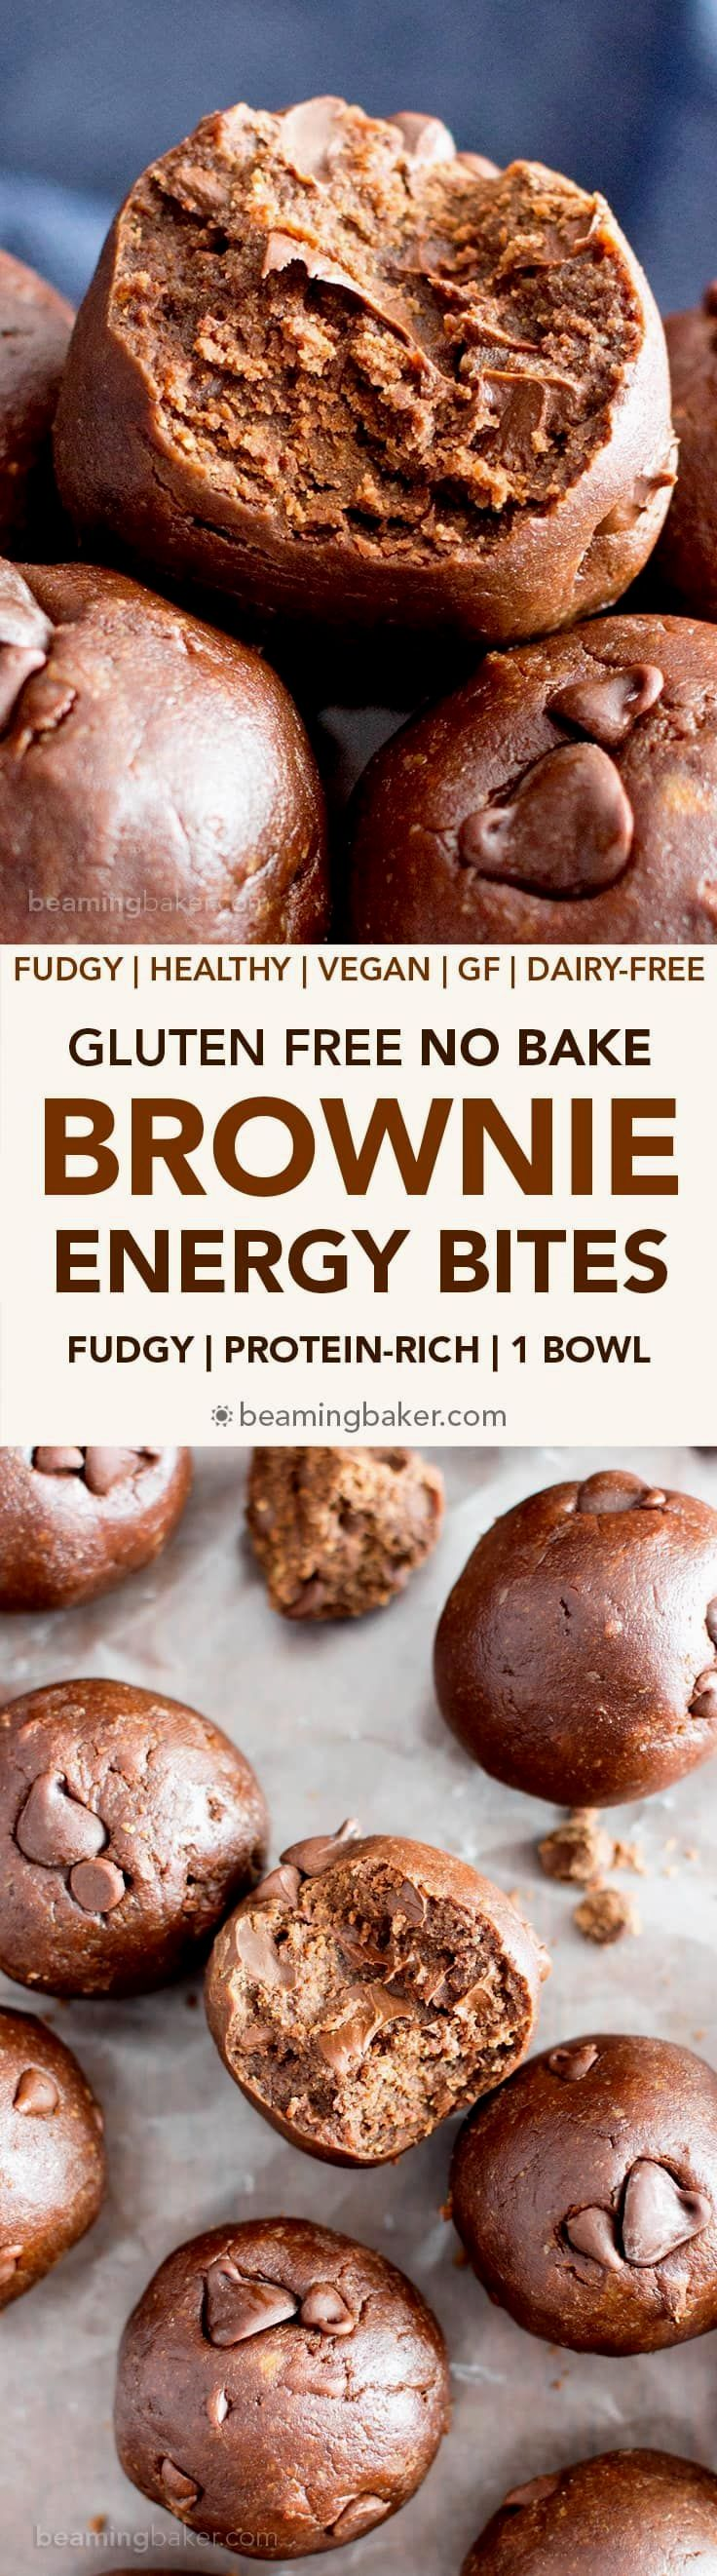 Gluten Free No Bake Brownie Energy Bites (V, GF): a one bowl recipe for fudgy, rich, 7-ingredient no bake bites that taste just like decadent brownies. Vegan, Protein-Packed, Gluten Free, Dairy-Free.